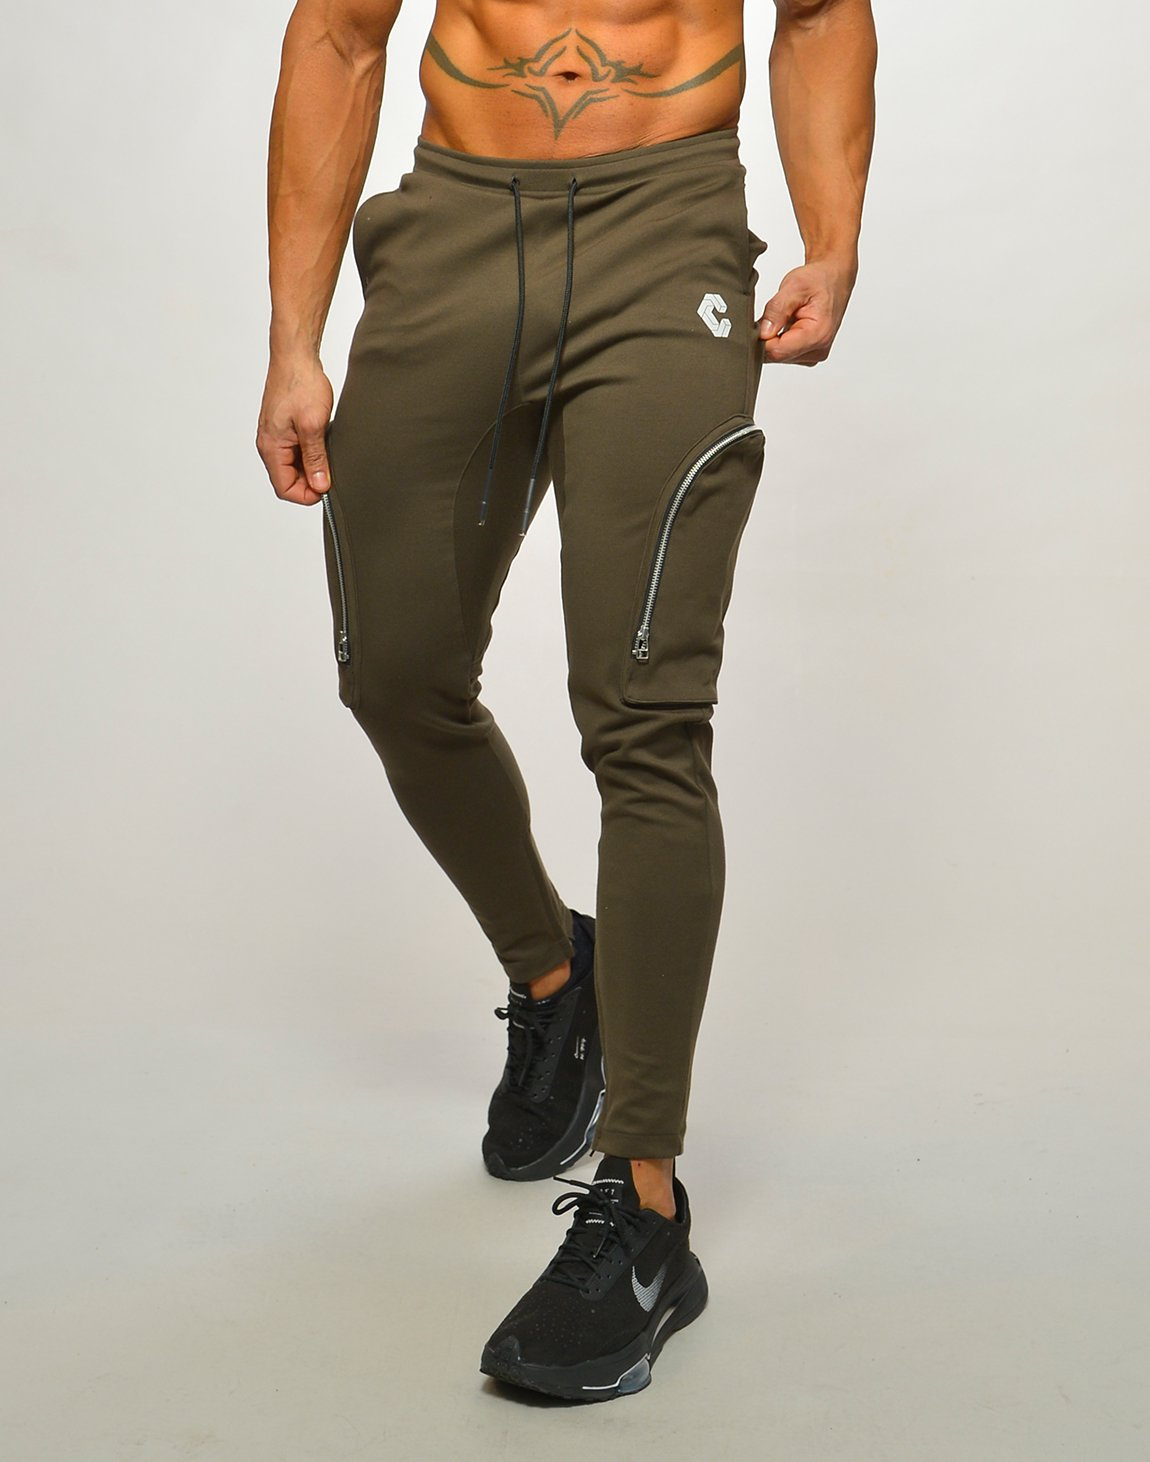 <img class='new_mark_img1' src='https://img.shop-pro.jp/img/new/icons1.gif' style='border:none;display:inline;margin:0px;padding:0px;width:auto;' />CRONOS SIDE ZIP PANTS【KHAKI】